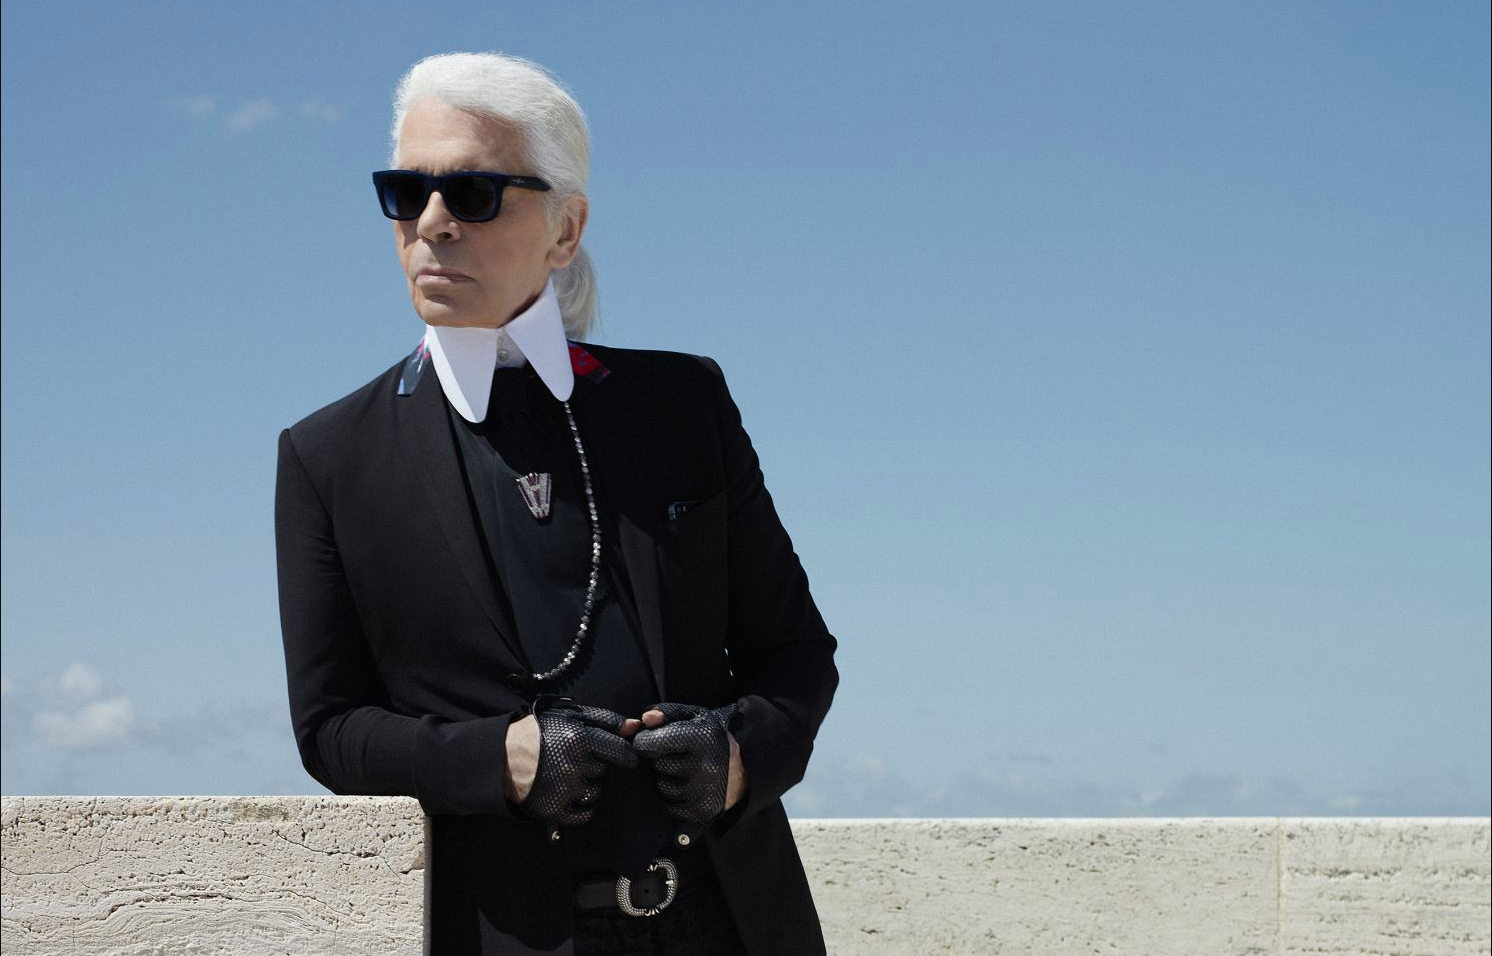 #Tatlergram: All The Karl Lagerfeld Tributes By Celebrities And Fashion Insiders, On Instagram